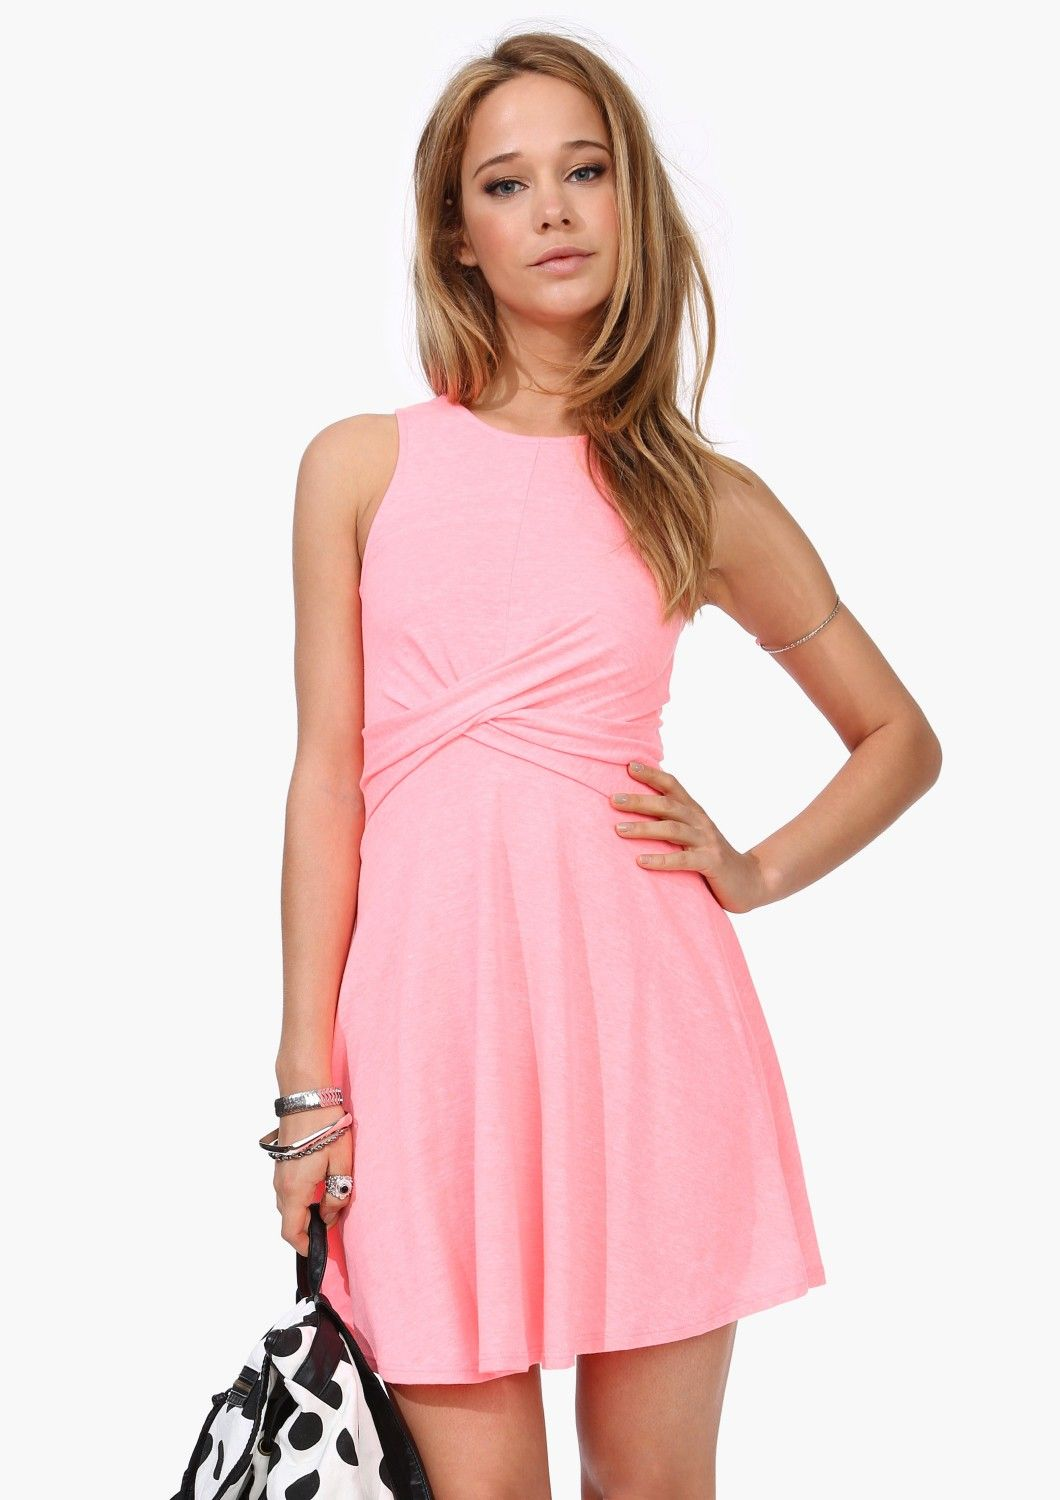 Twist Tank Dress | Fashion | Pinterest | Falda, Amar y Vestiditos